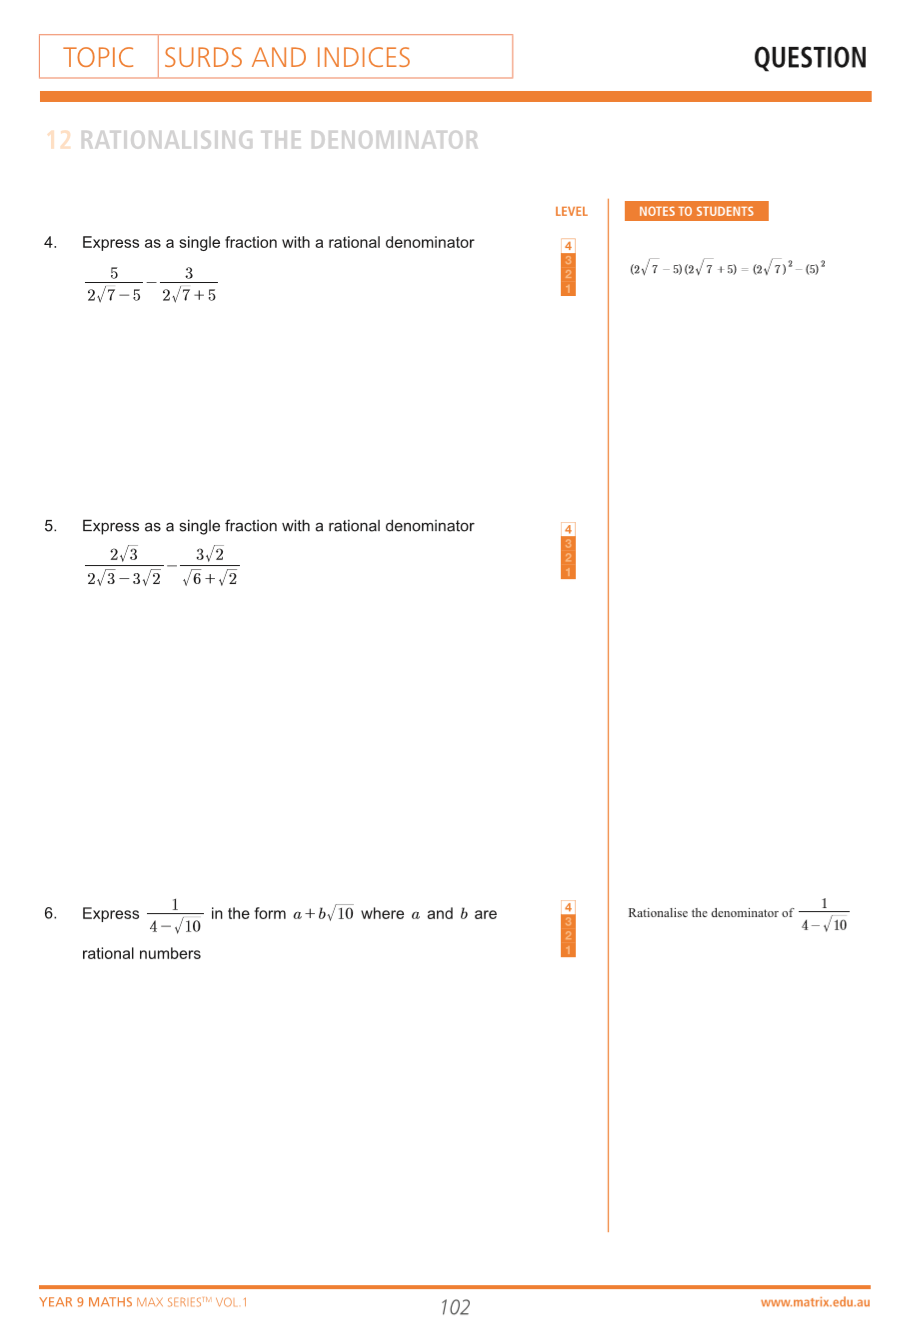 Questions from Year 9 Maths Max Series Vol. 1 Surds and Indices